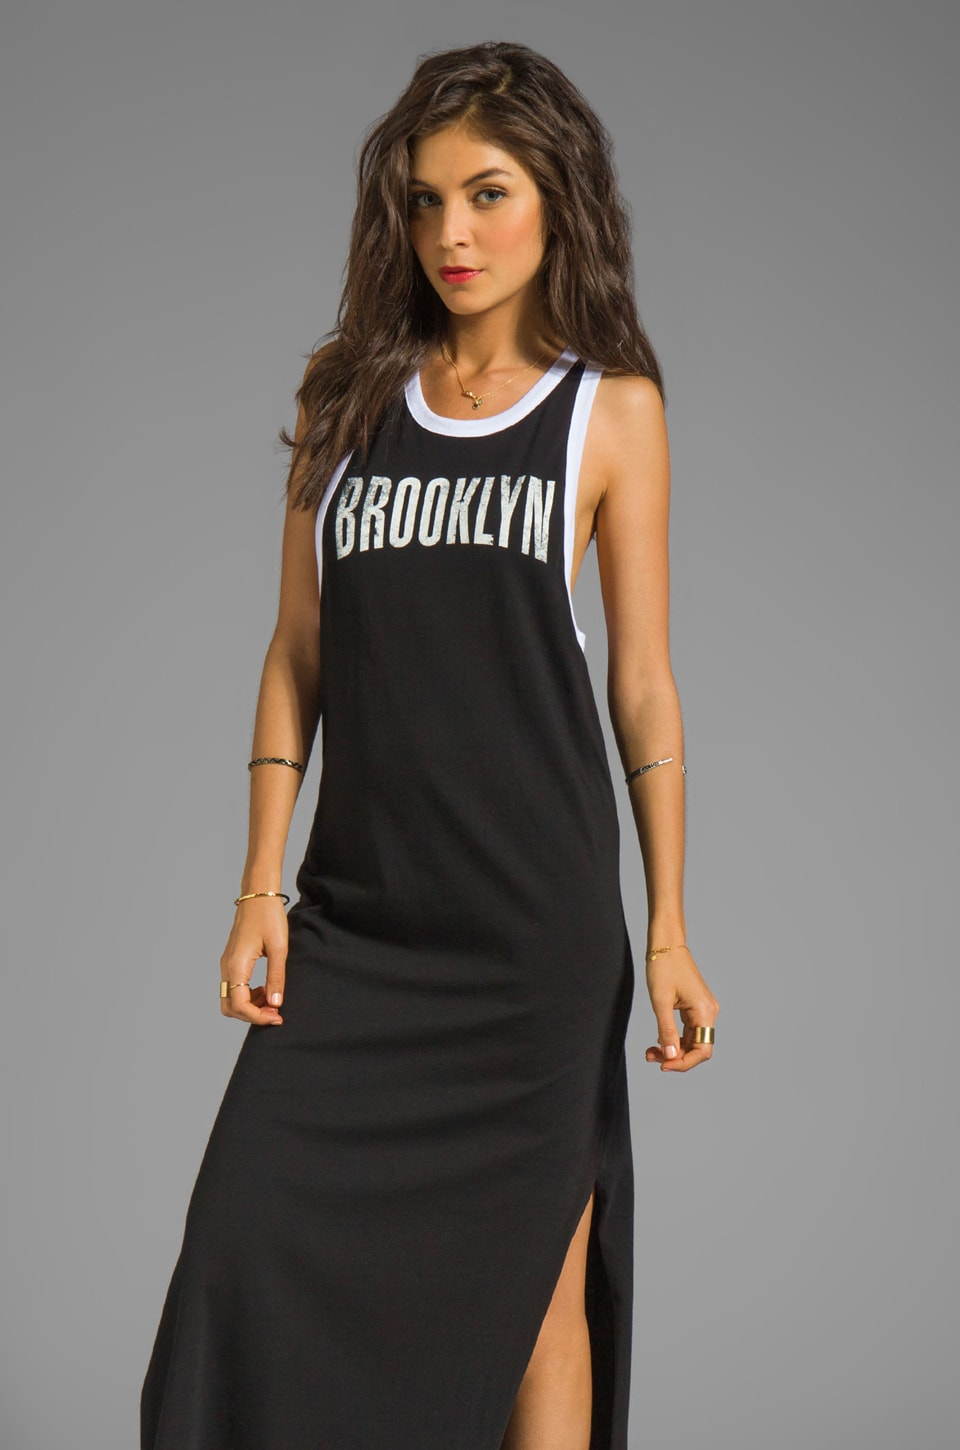 Chaser No Sleep Till Brooklyn Graphic Cotton Ringer Maxi Tank Dress in White/ Black